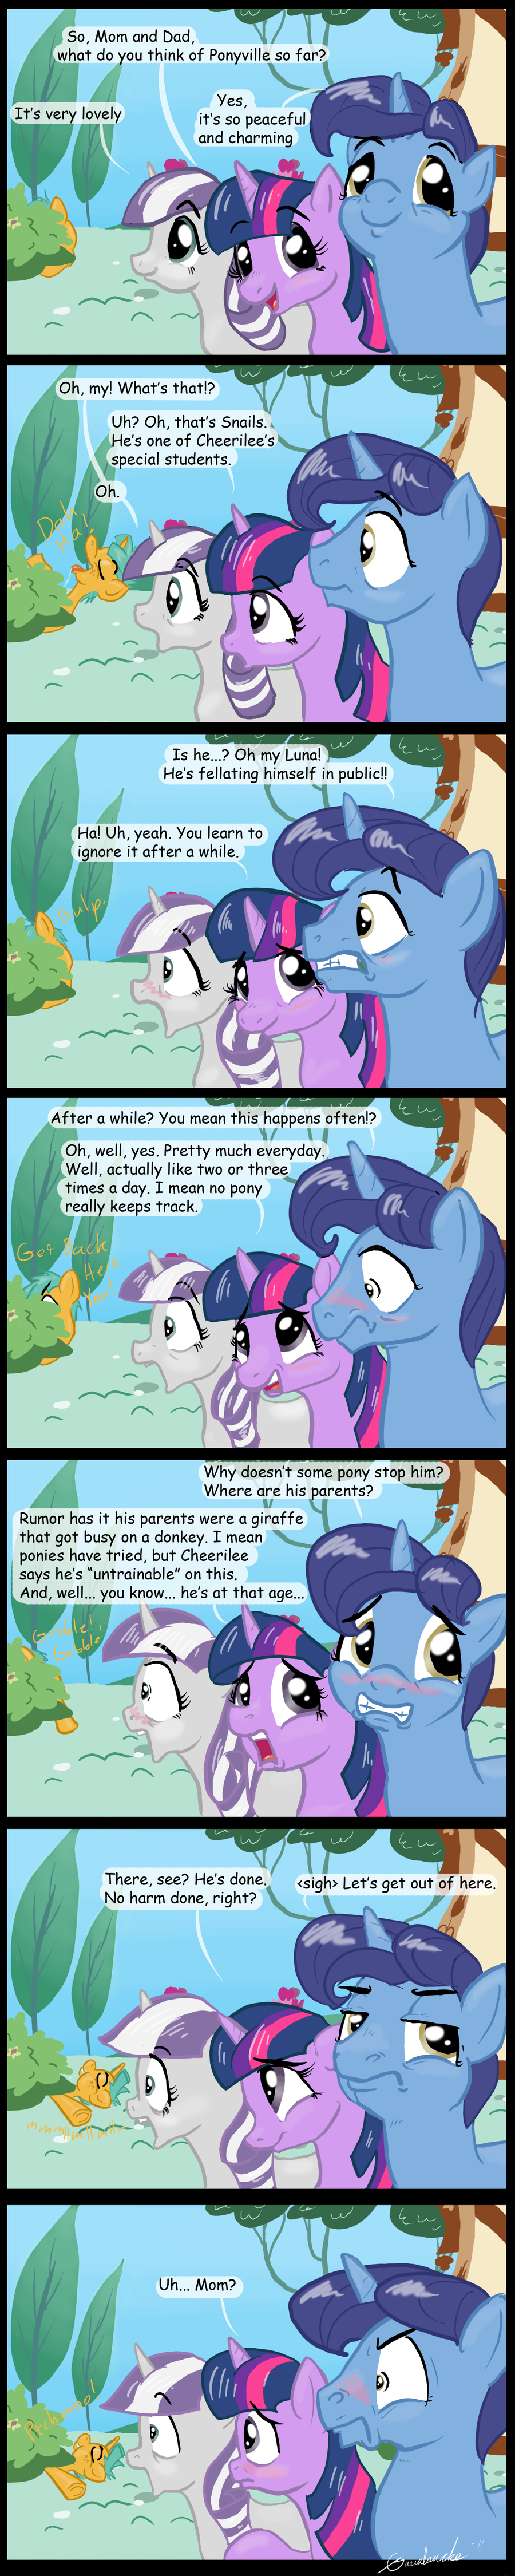 e621 absurd_res blush comic equine female feral friendship_is_magic fur gavalanche hair hi_res horn male mammal multicolored_hair my_little_pony night_light_(mlp) parent plant purple_fur purple_hair shocked shrub snails_(mlp) stare twilight_sparkle_(mlp) twilight_velvet_(mlp) two_tone_hair unicorn